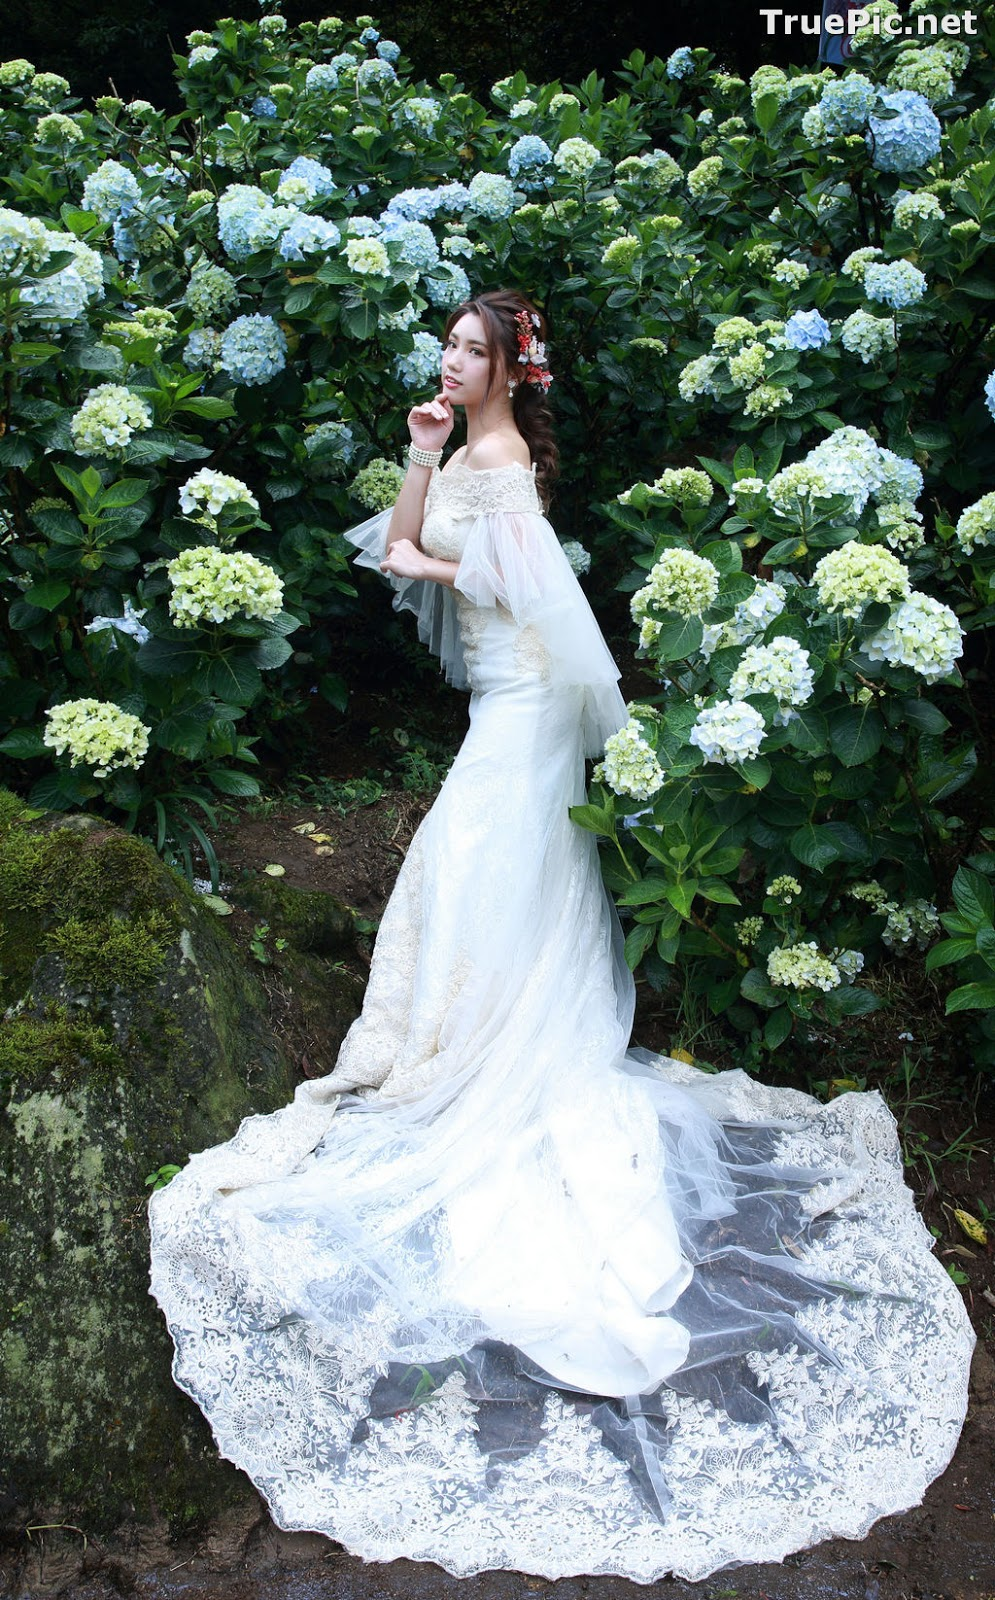 Image Taiwanese Model - 張倫甄 - Beautiful Bride and Hydrangea Flowers - TruePic.net - Picture-4